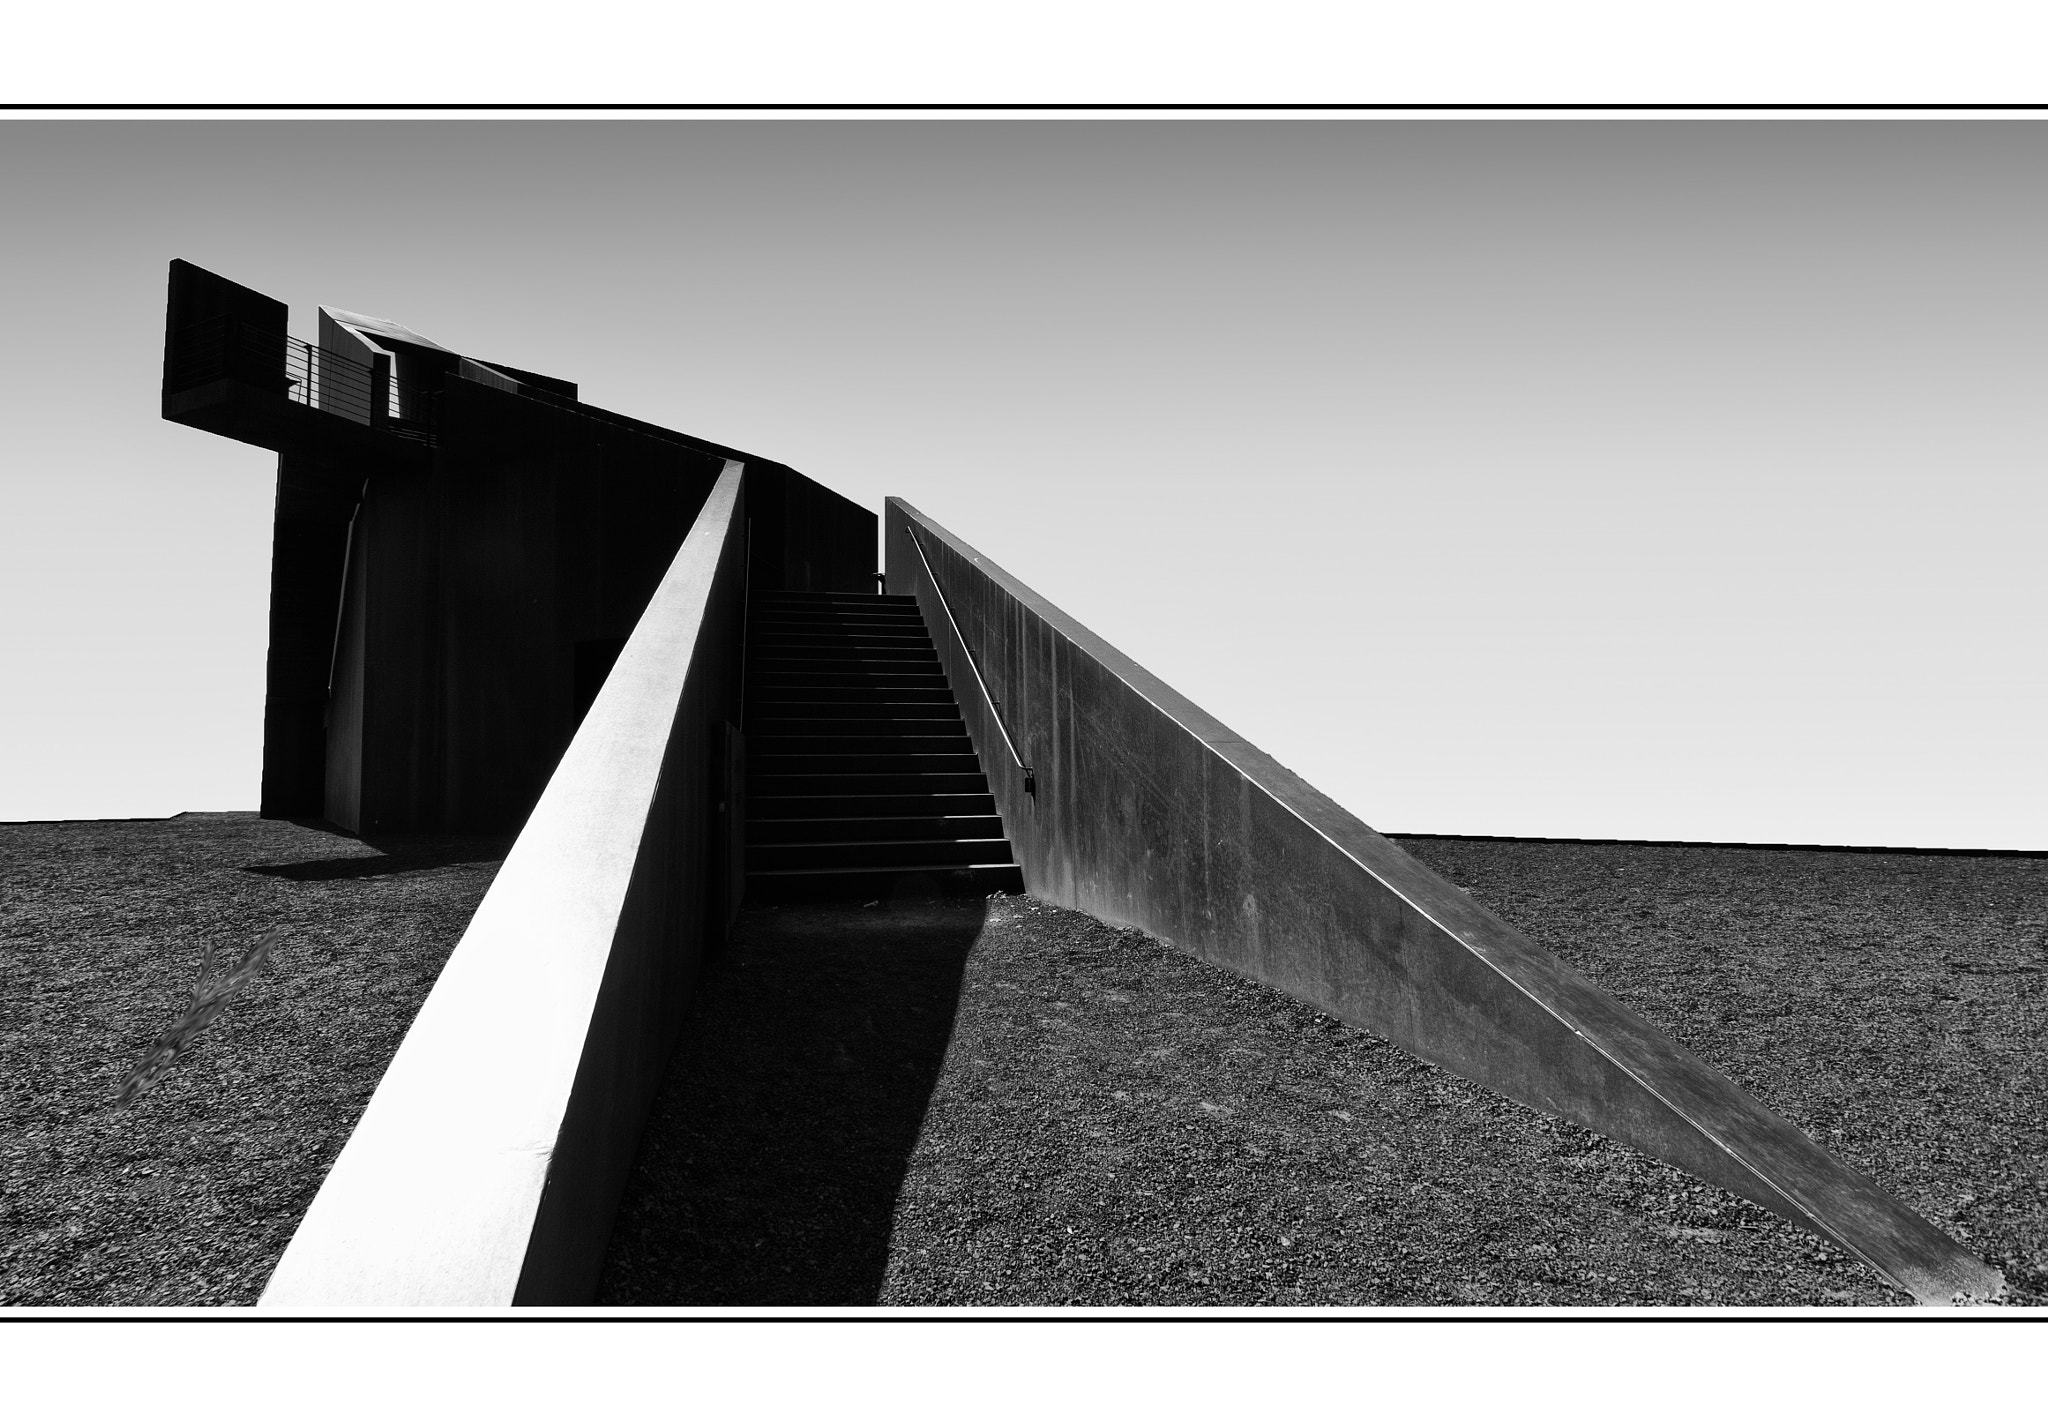 Photograph Stairway to ...? by Frank Schäfer on 500px